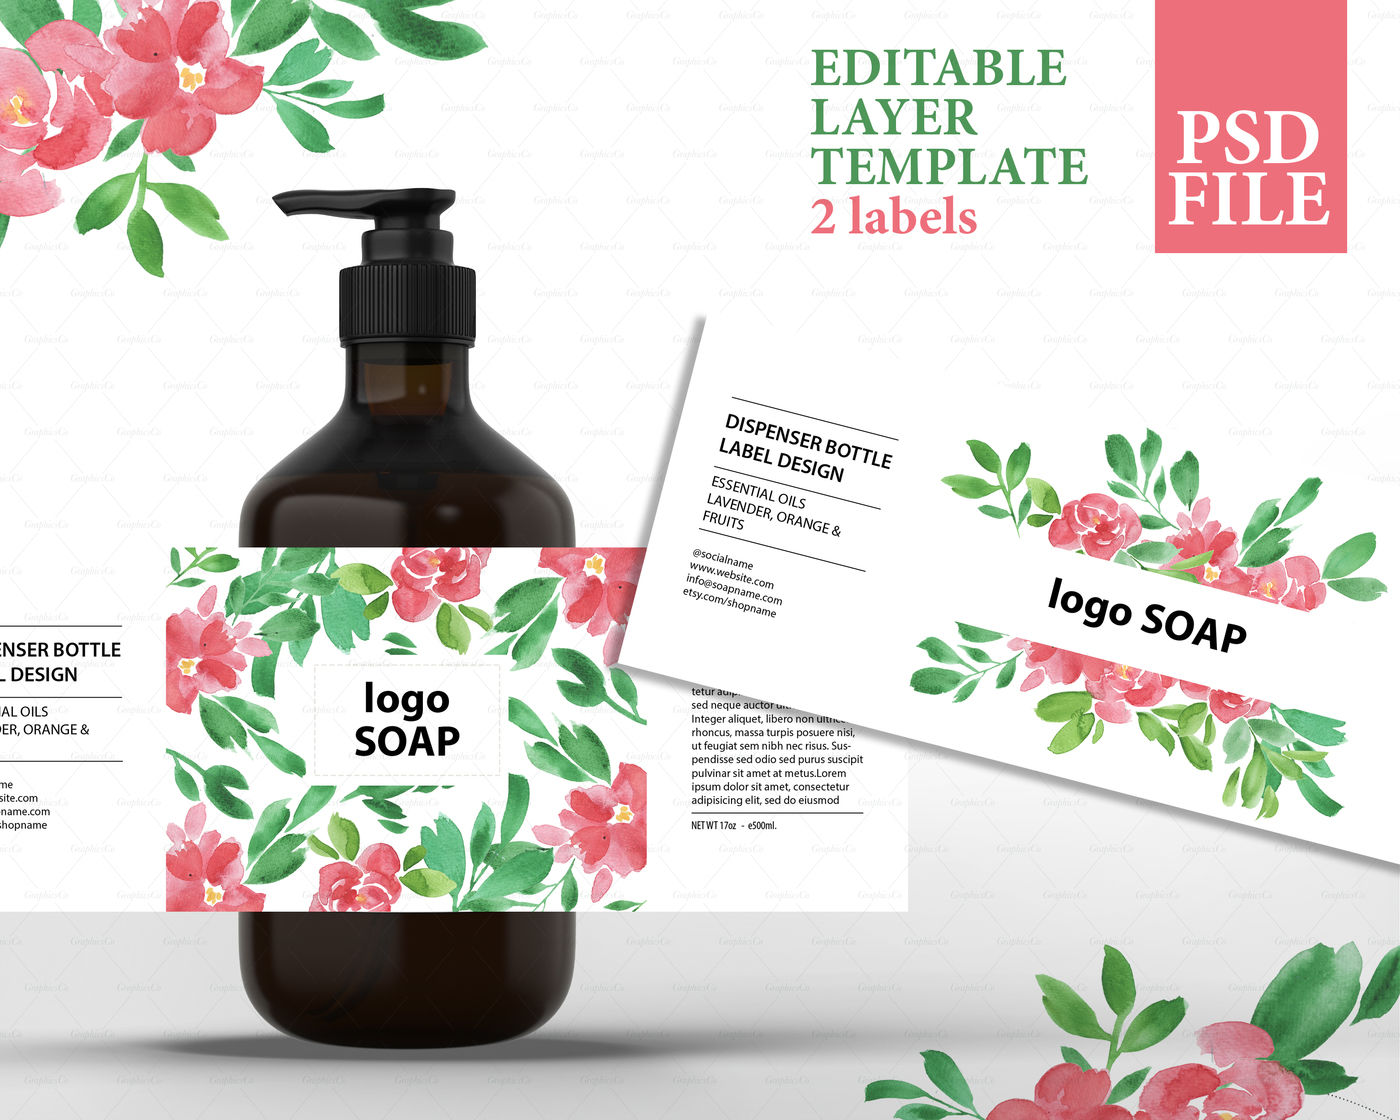 Soap label design, cosmetic label template, product